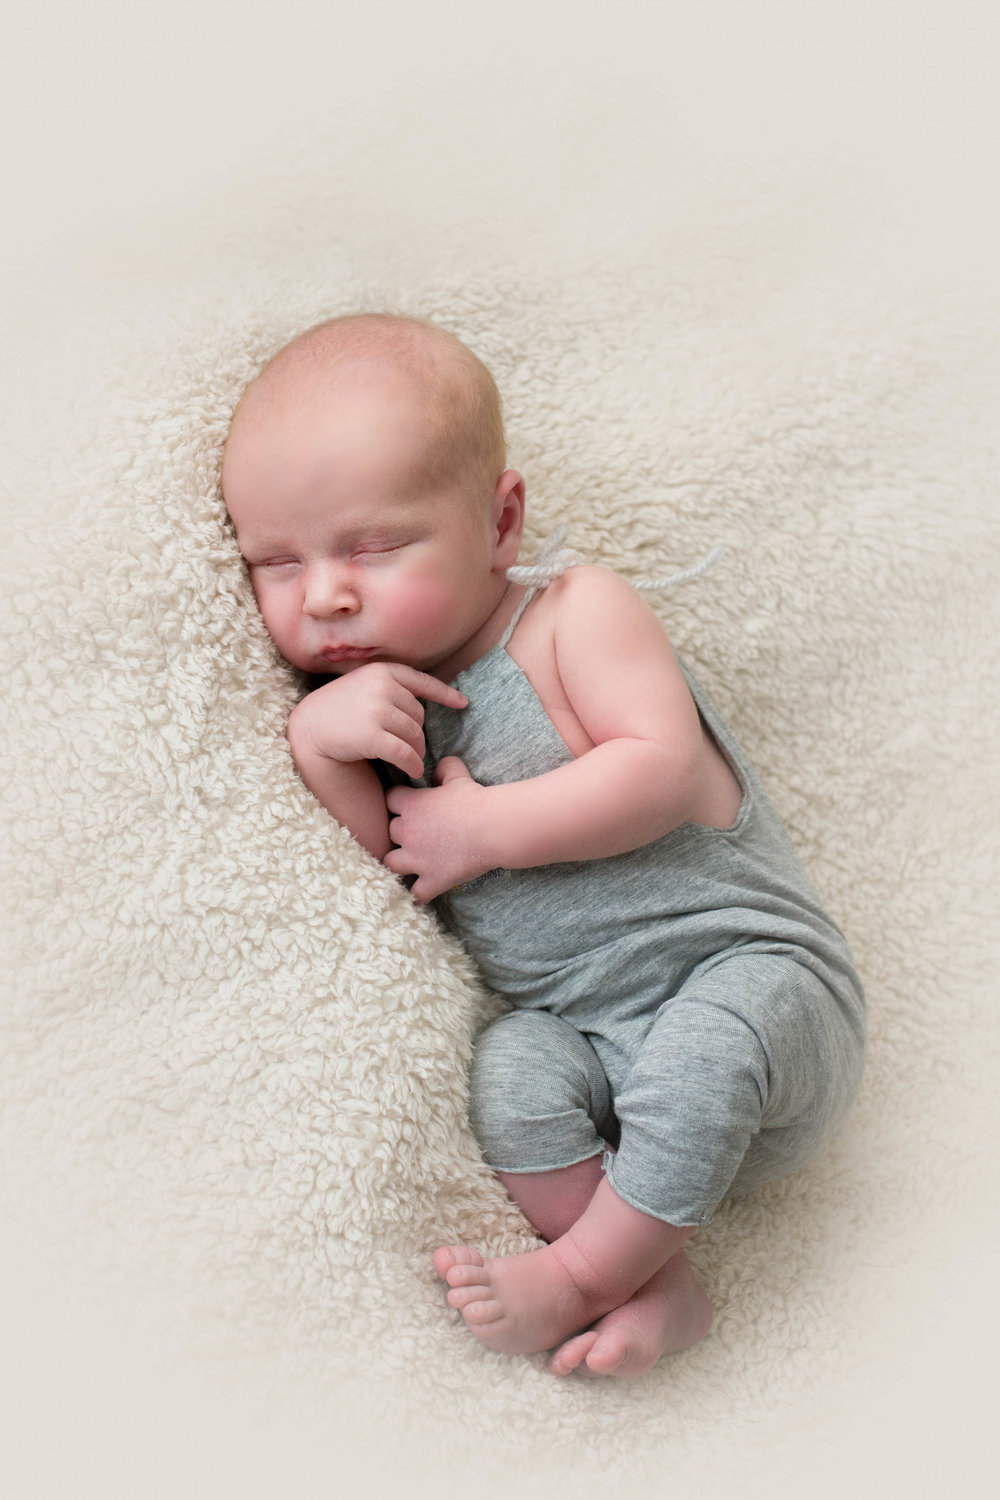 newborn-photographer-glasgow-grey-suit-asleep